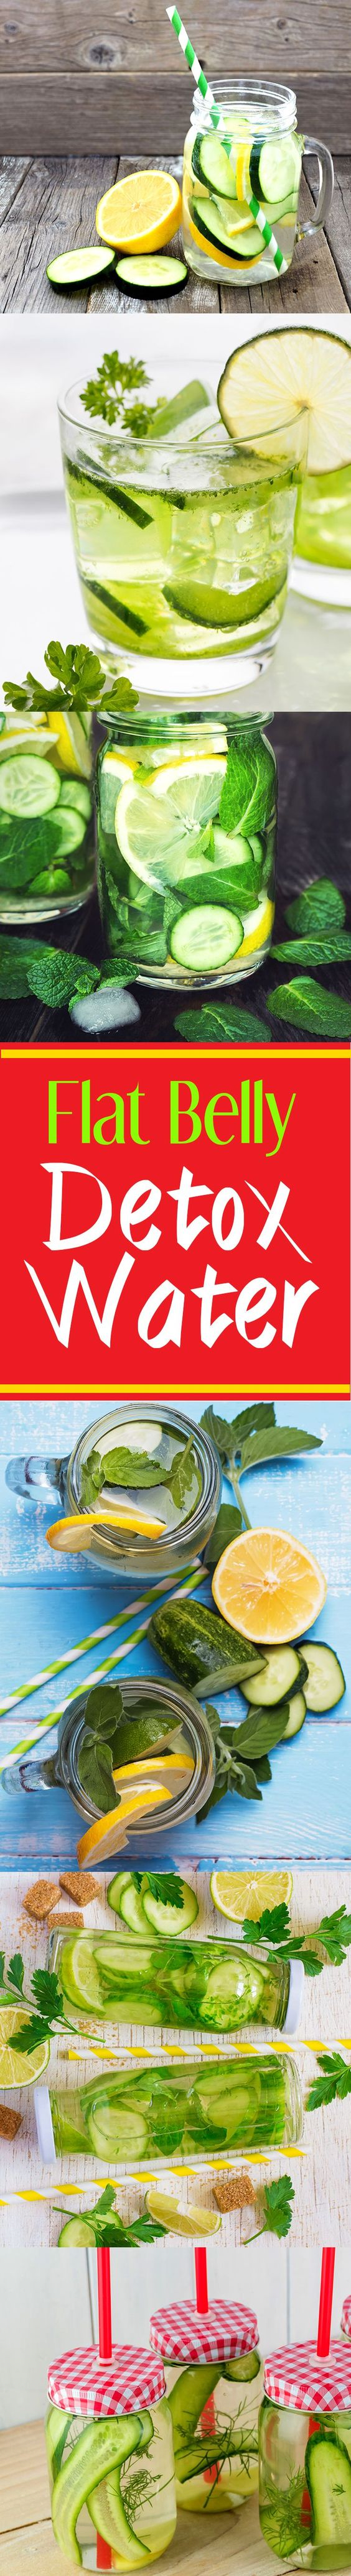 Detox, Flat belly and Fruit infused water on Pinterest